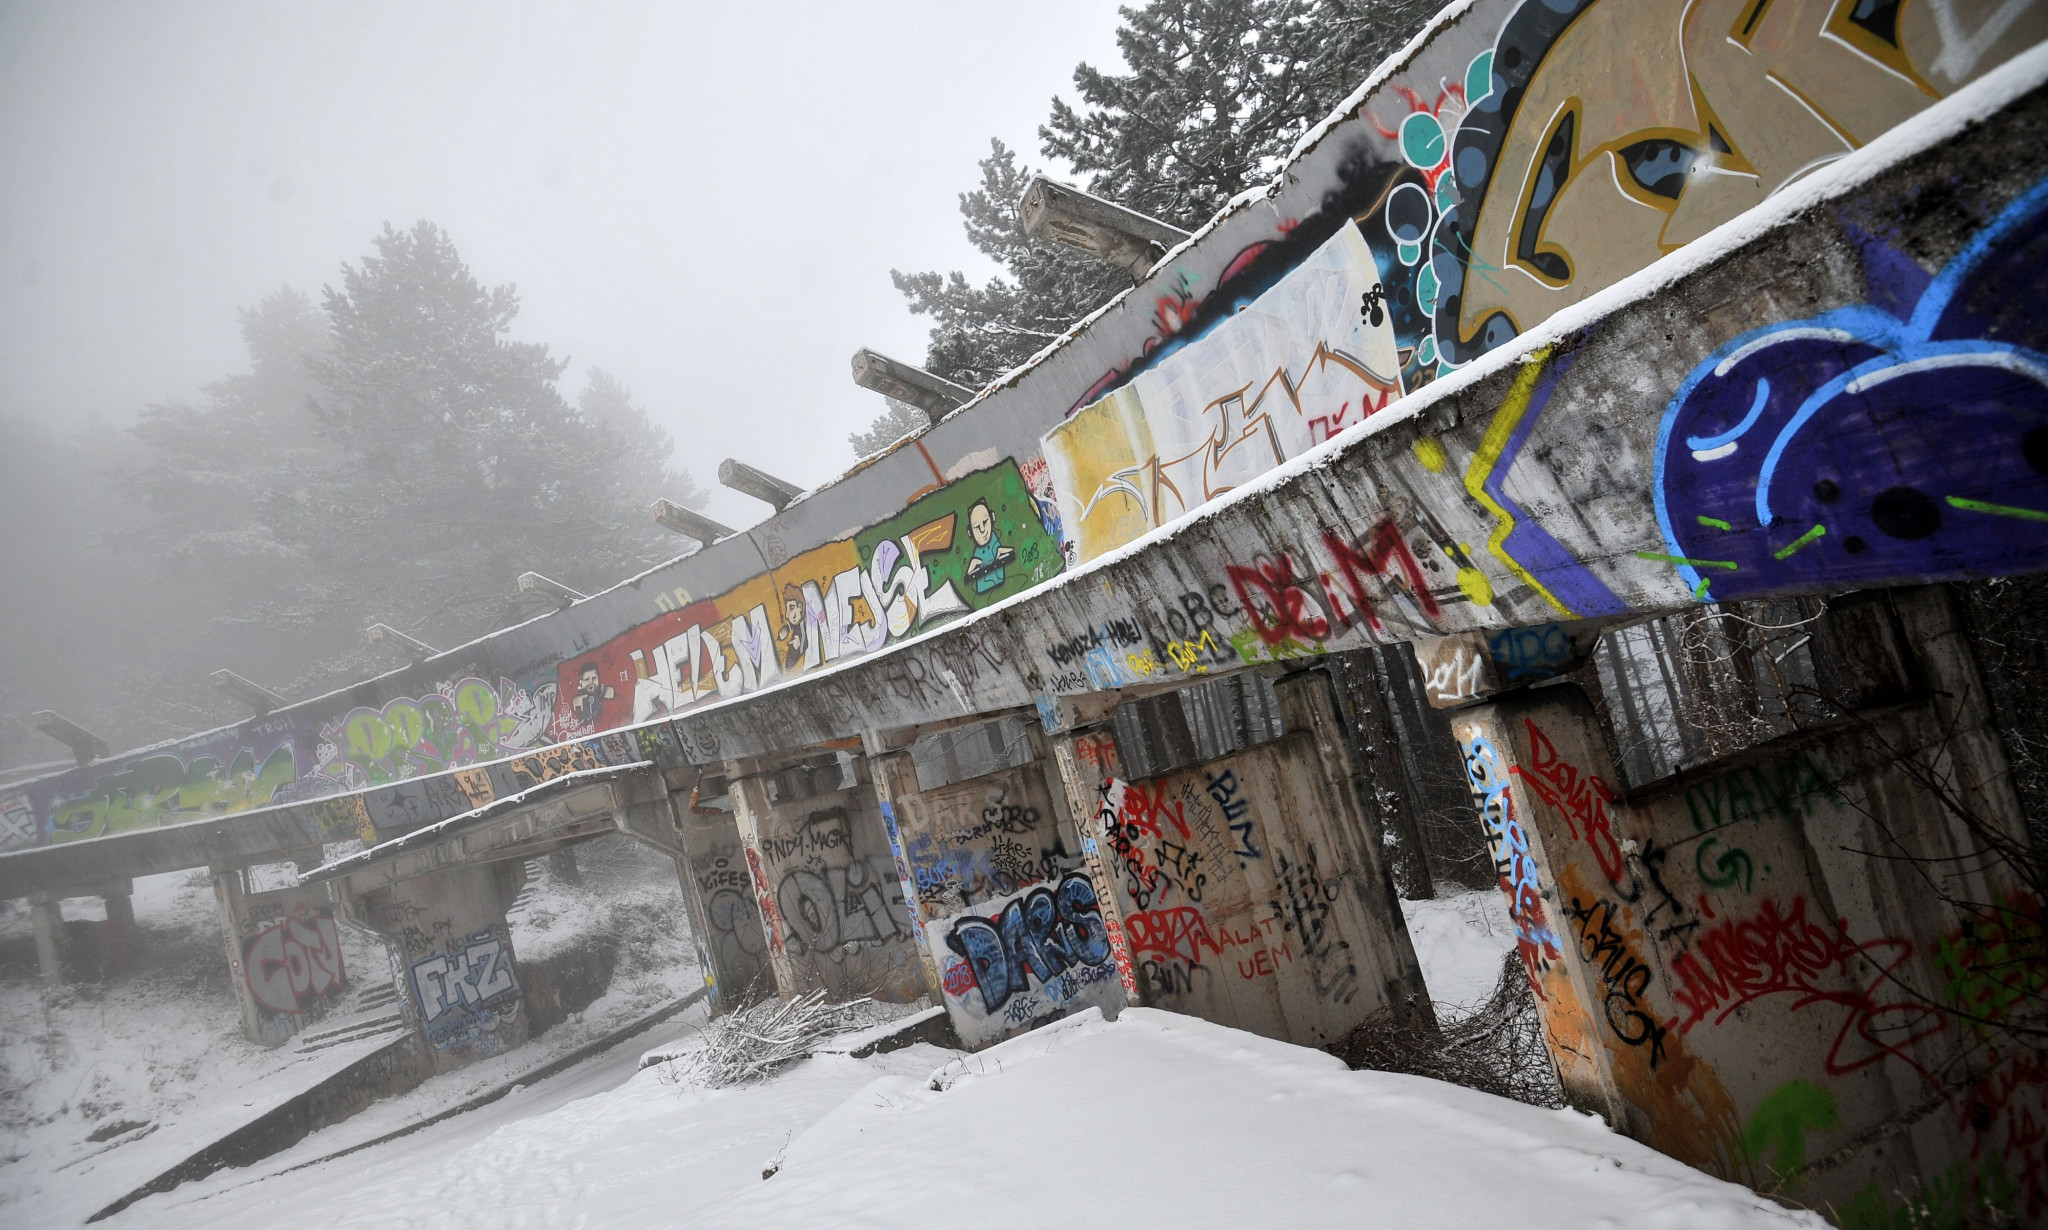 Sarajevo 1984 Winter Olympic bobsleigh track set to be re-built